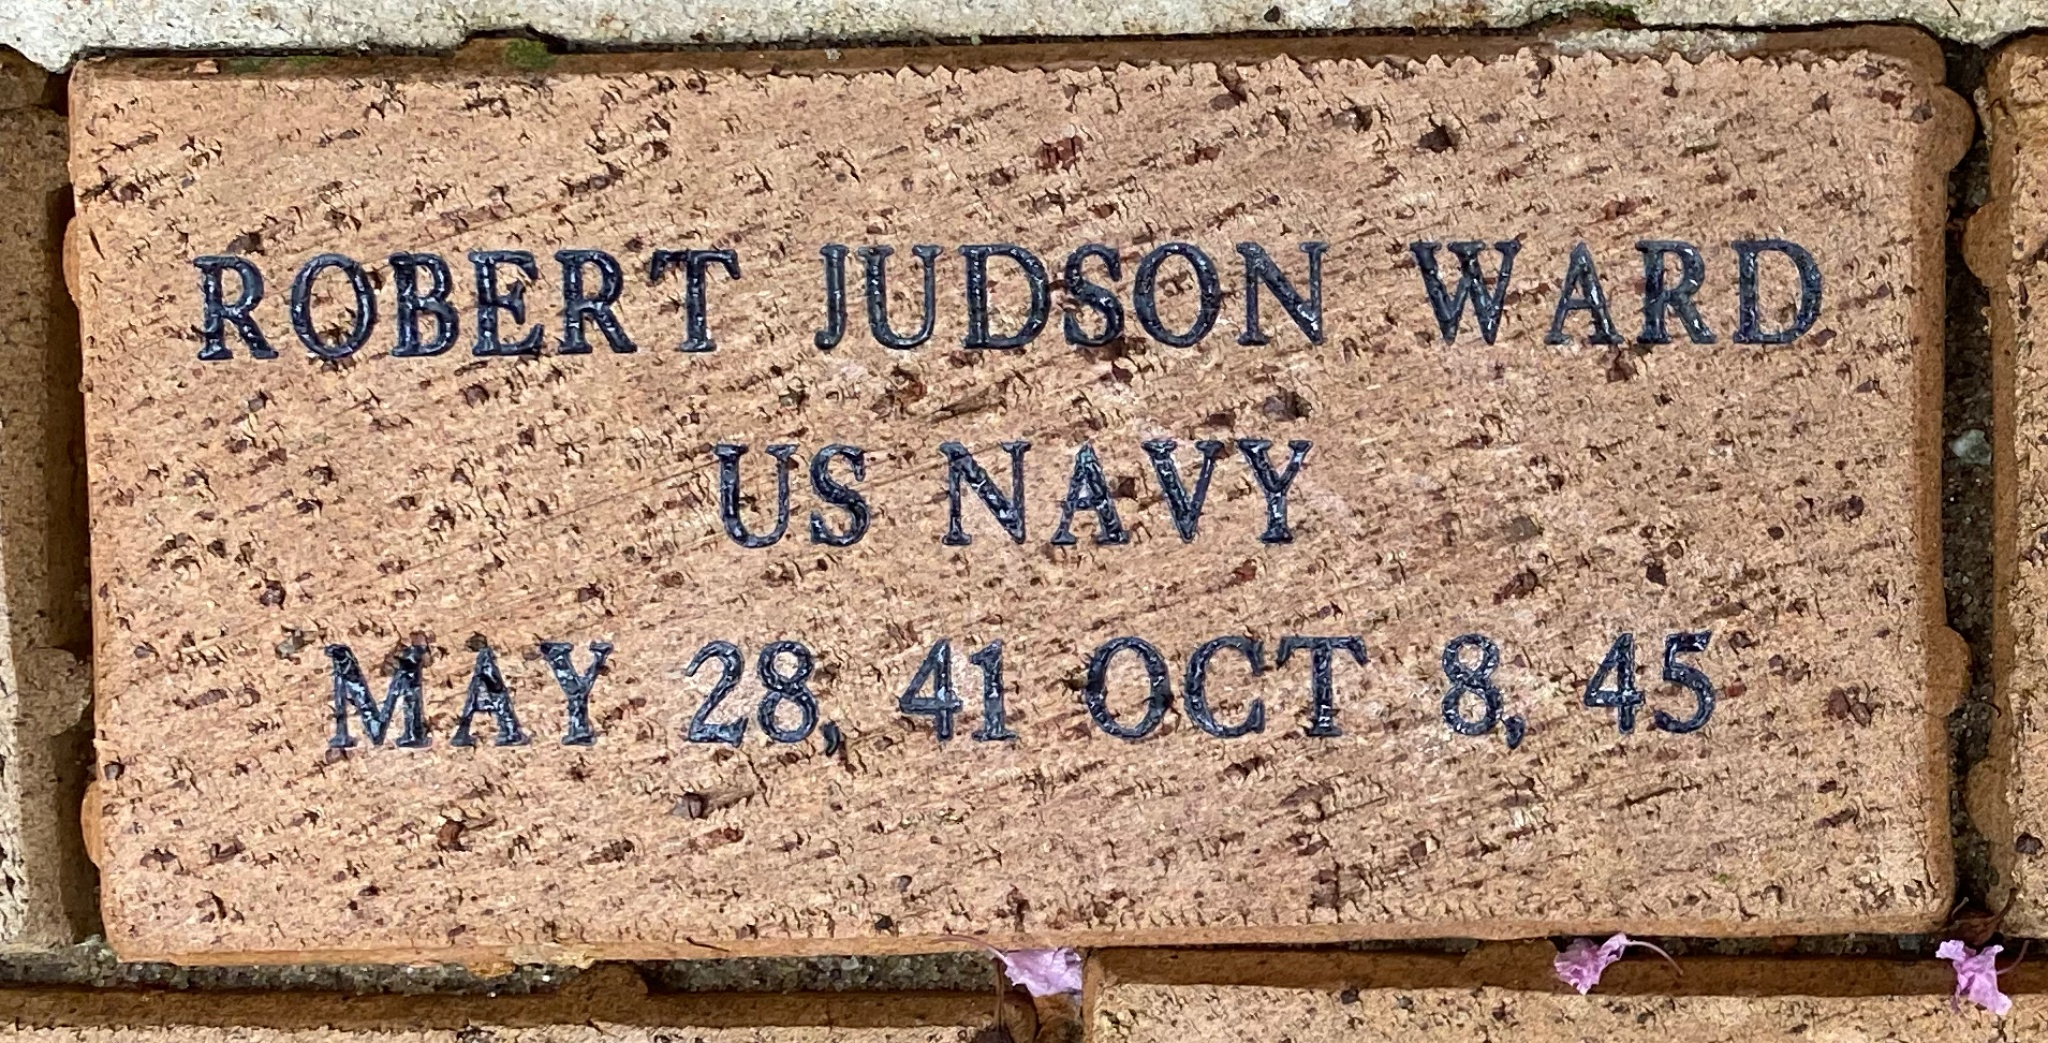 ROBERT JUDSON WARD U S NAVY MAY 28, 41 OCT 8, 45